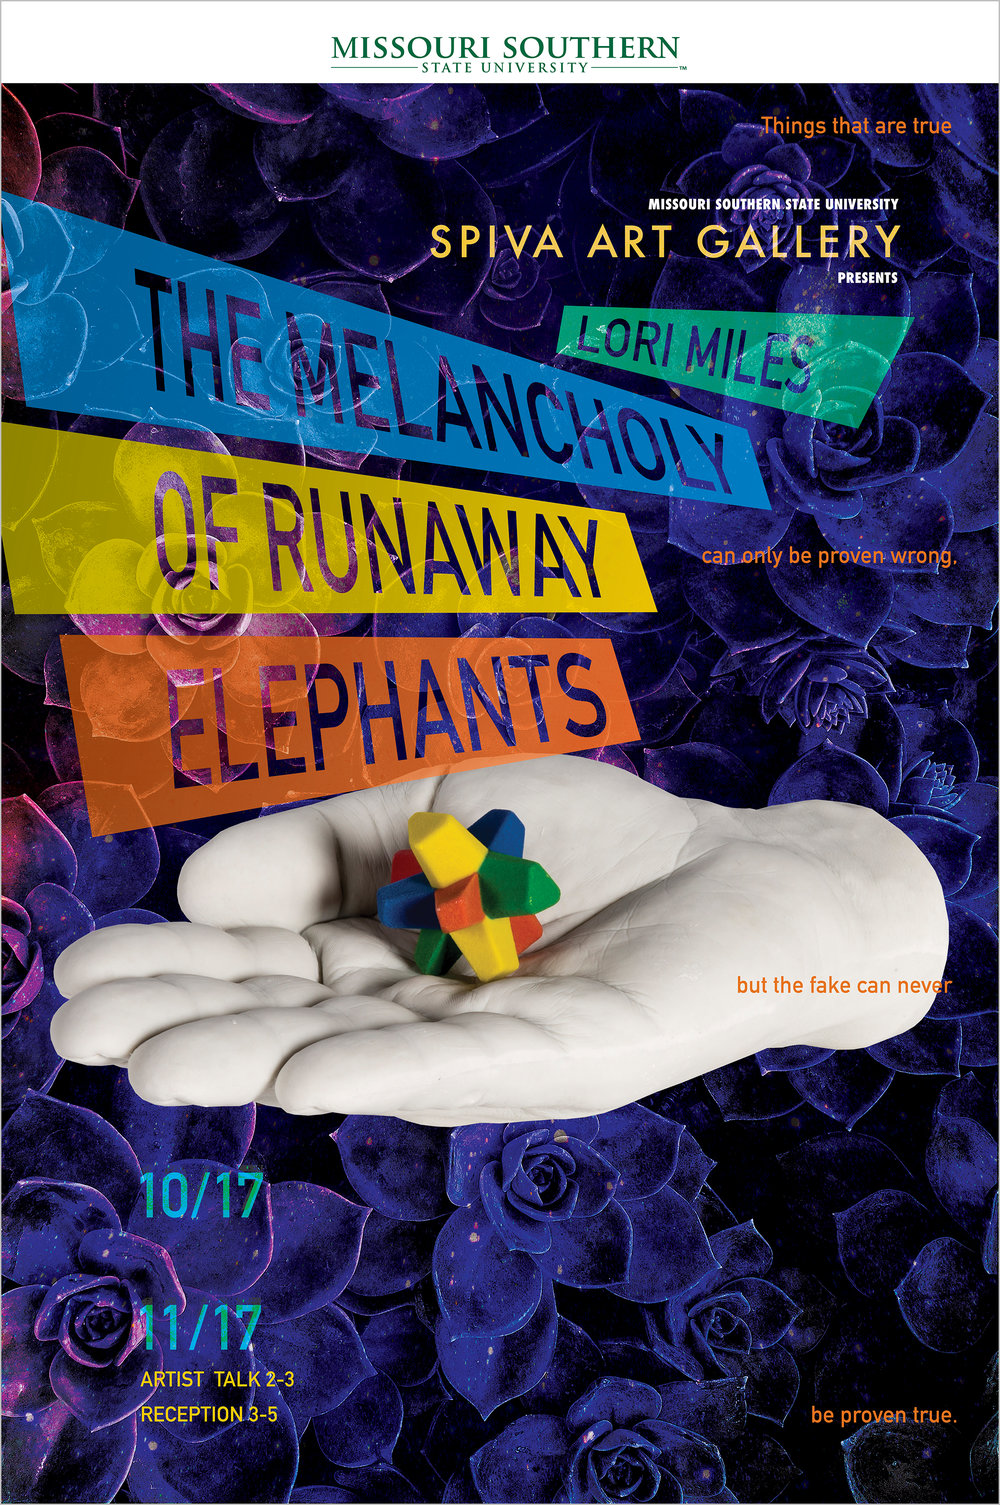 Lori Miles, The Melancholy of Runaway Elephants